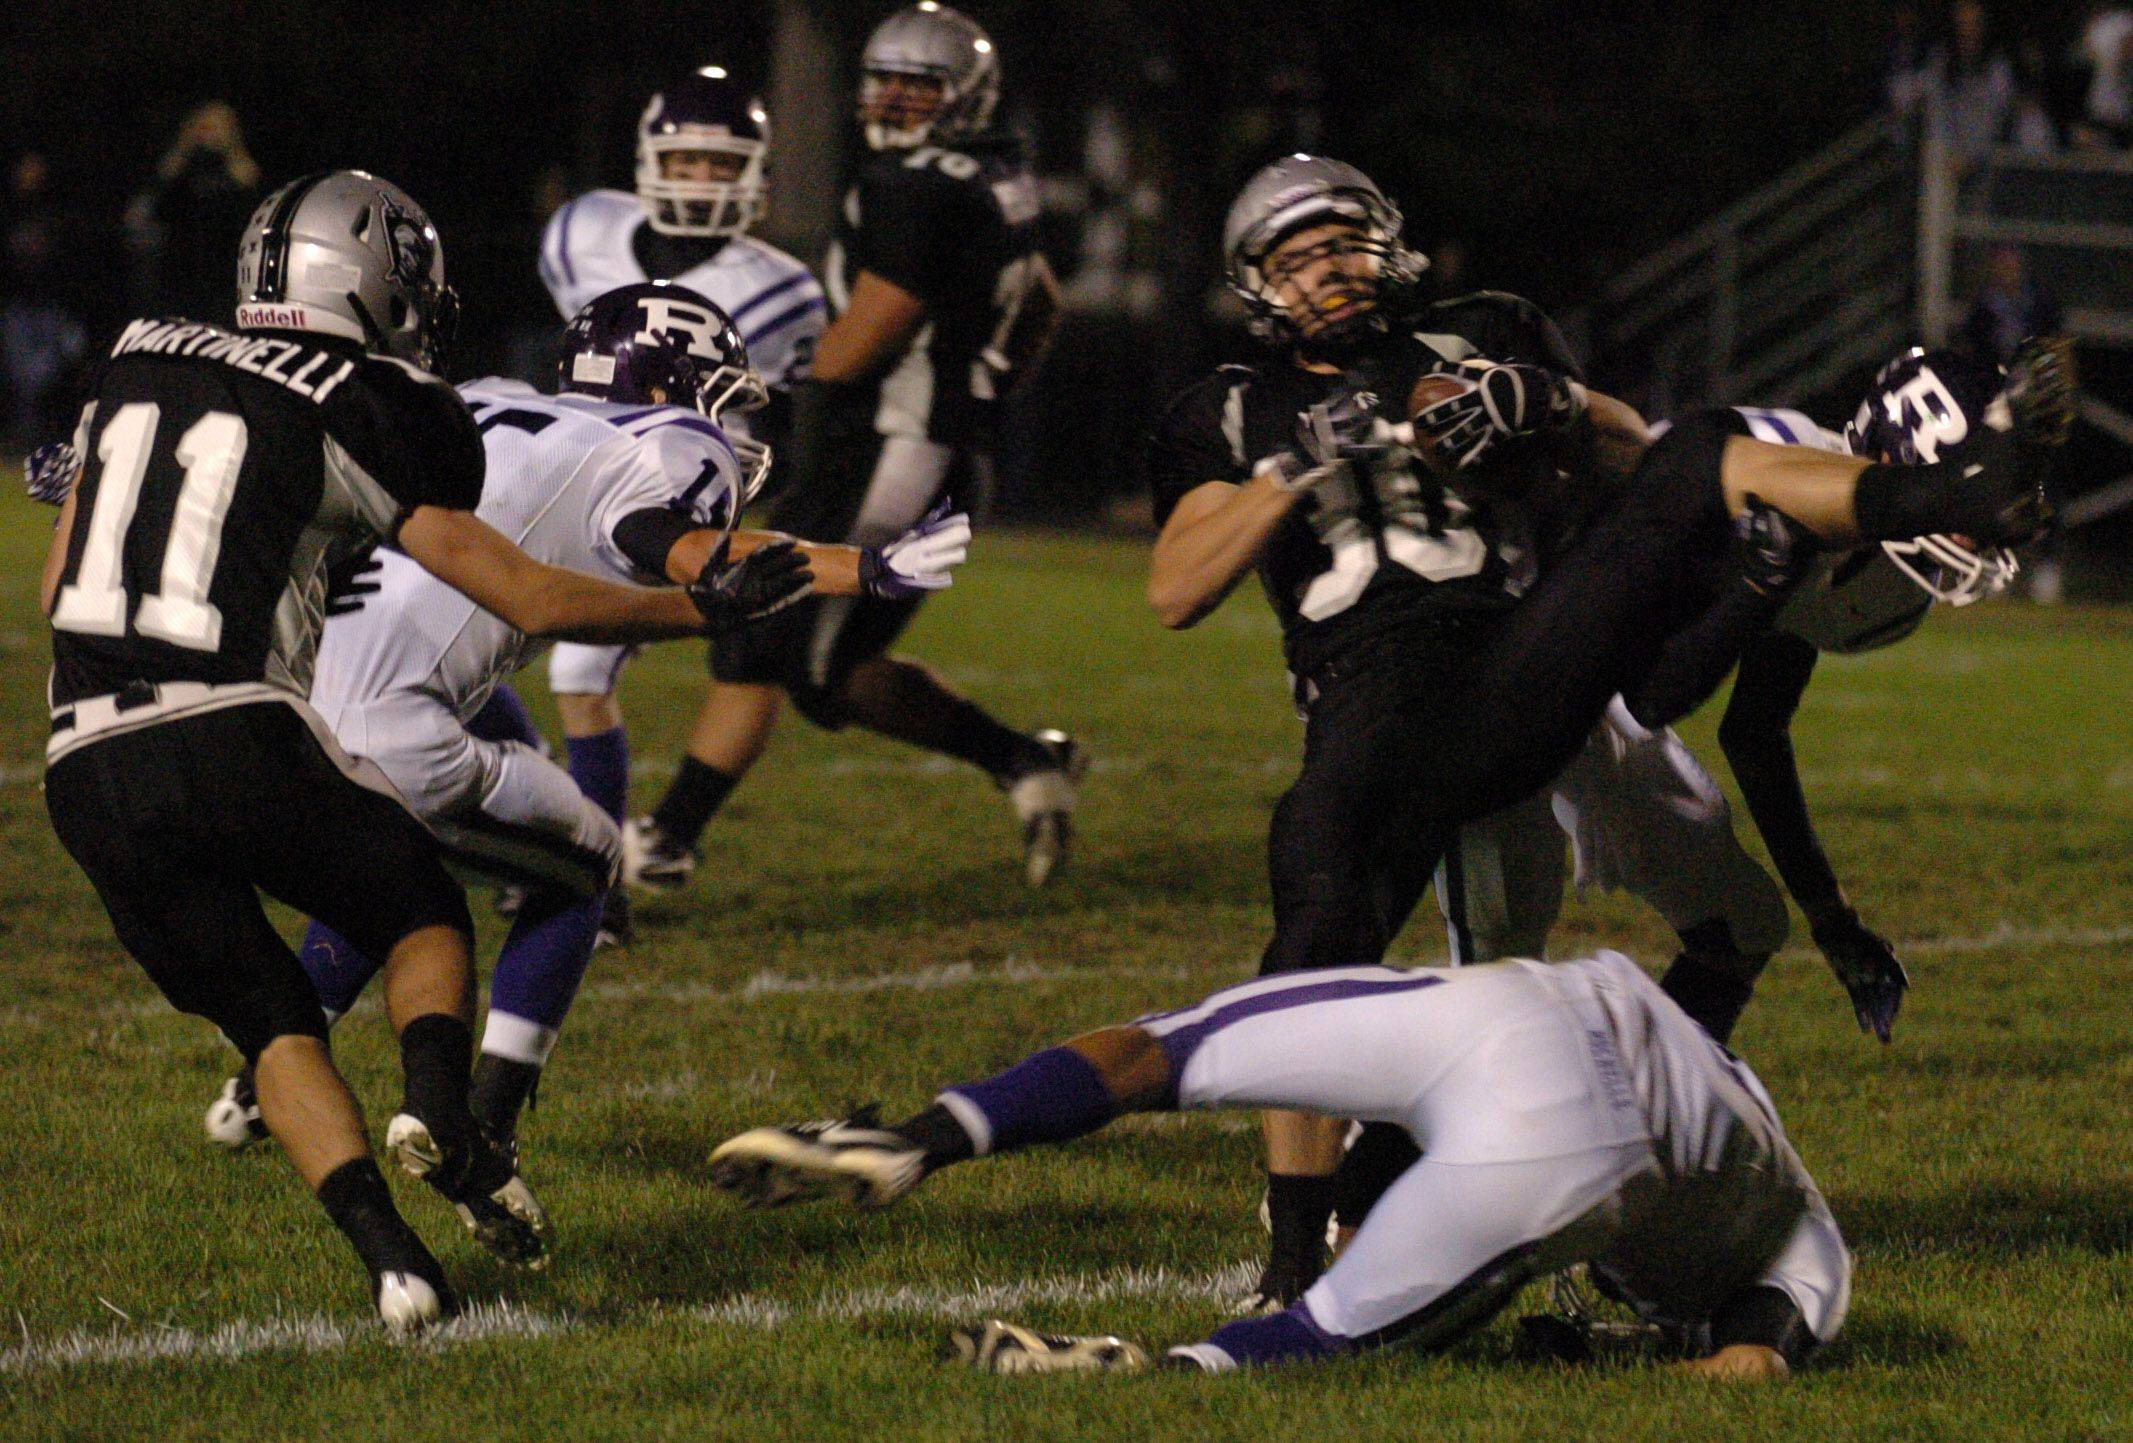 Kaneland�s Jesse Balluff runs the ball through the Rochelle defense Friday at Kaneland High School.